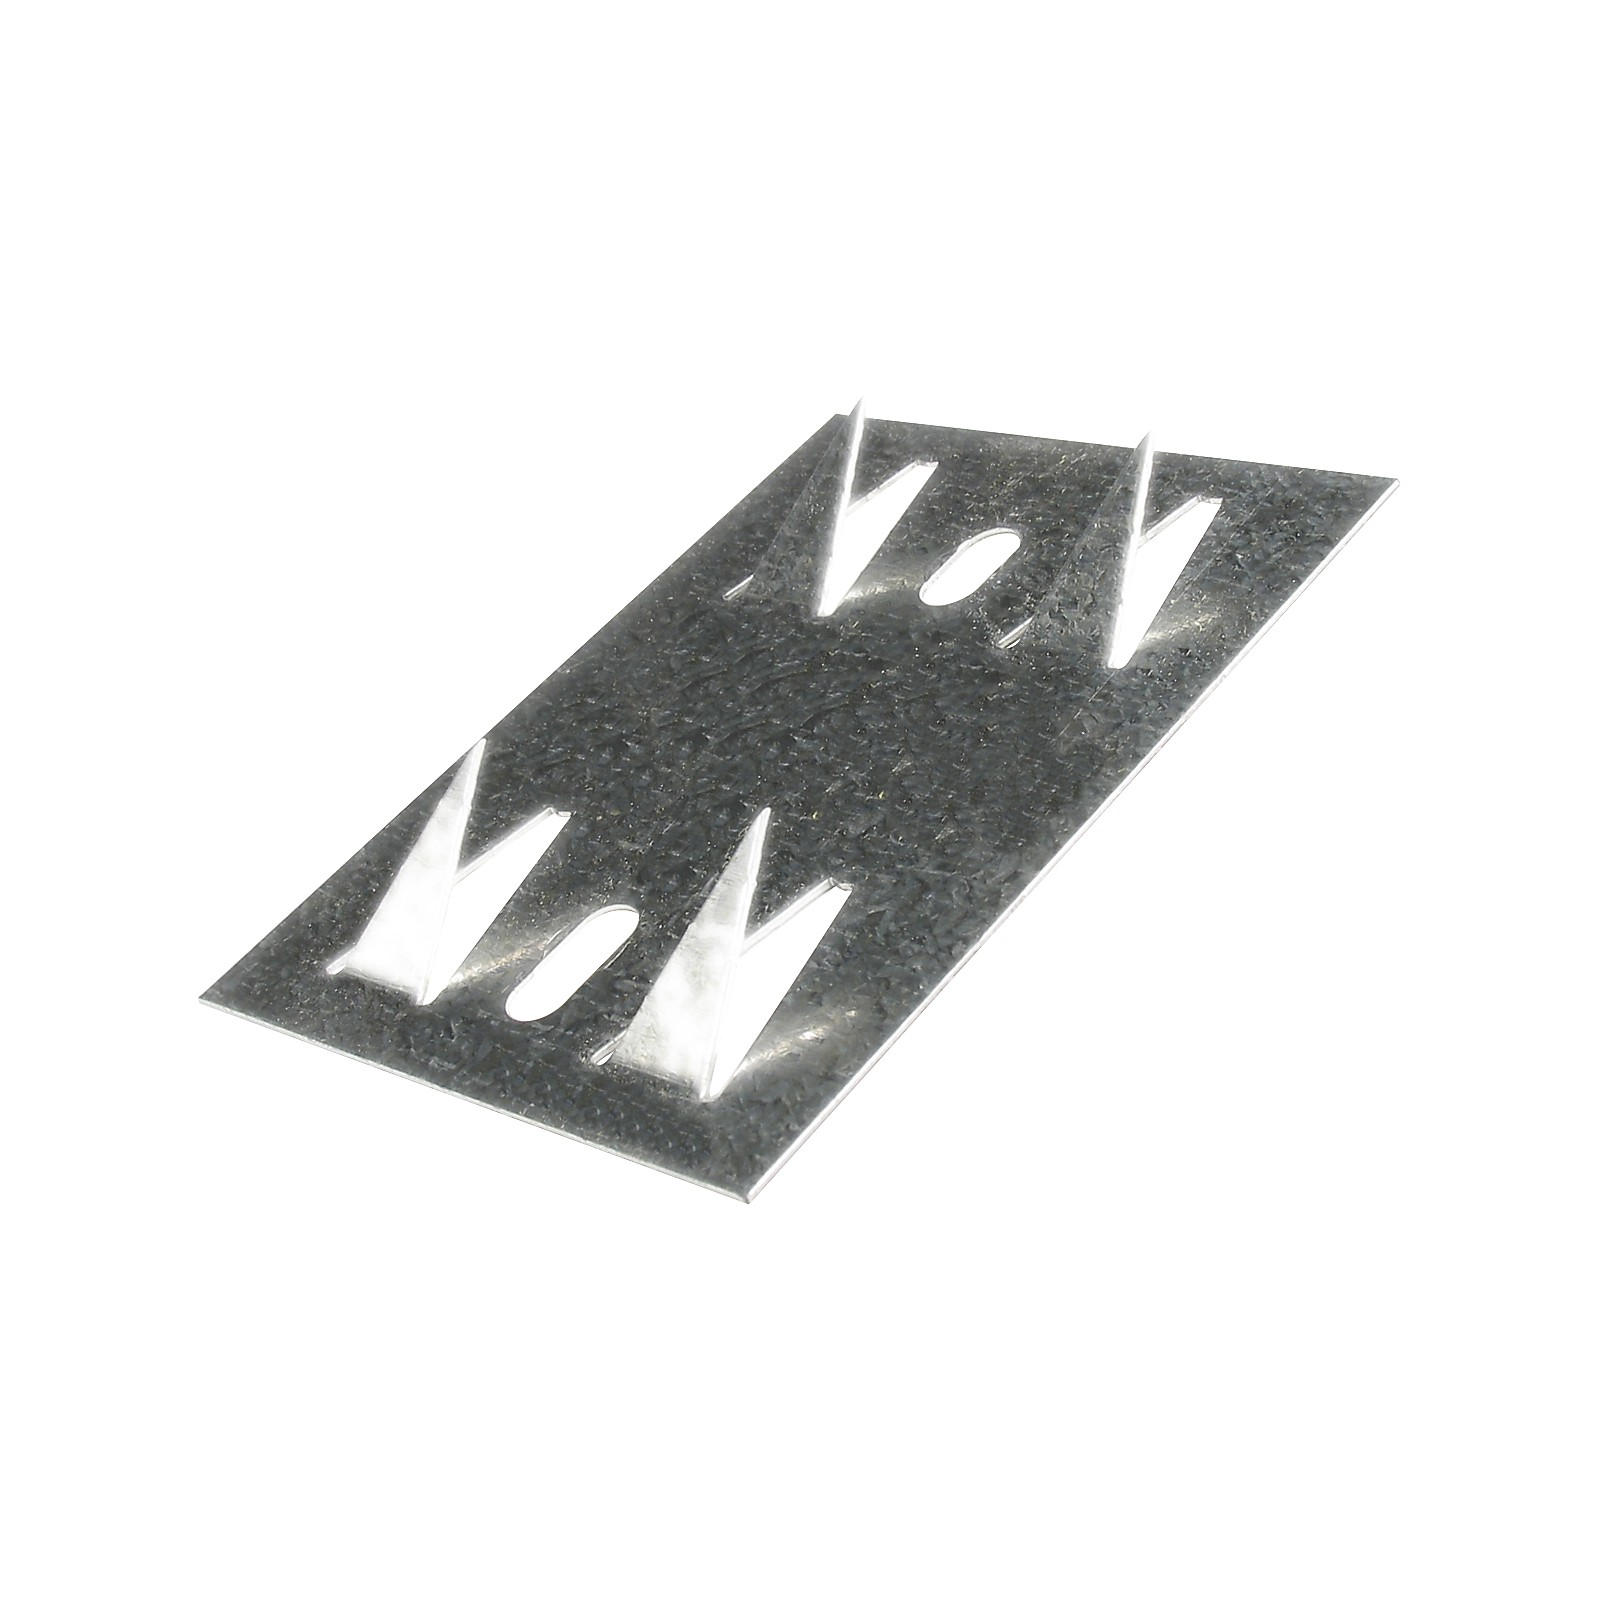 Primacoustic Broadway Surface Impaler Mounting Clip